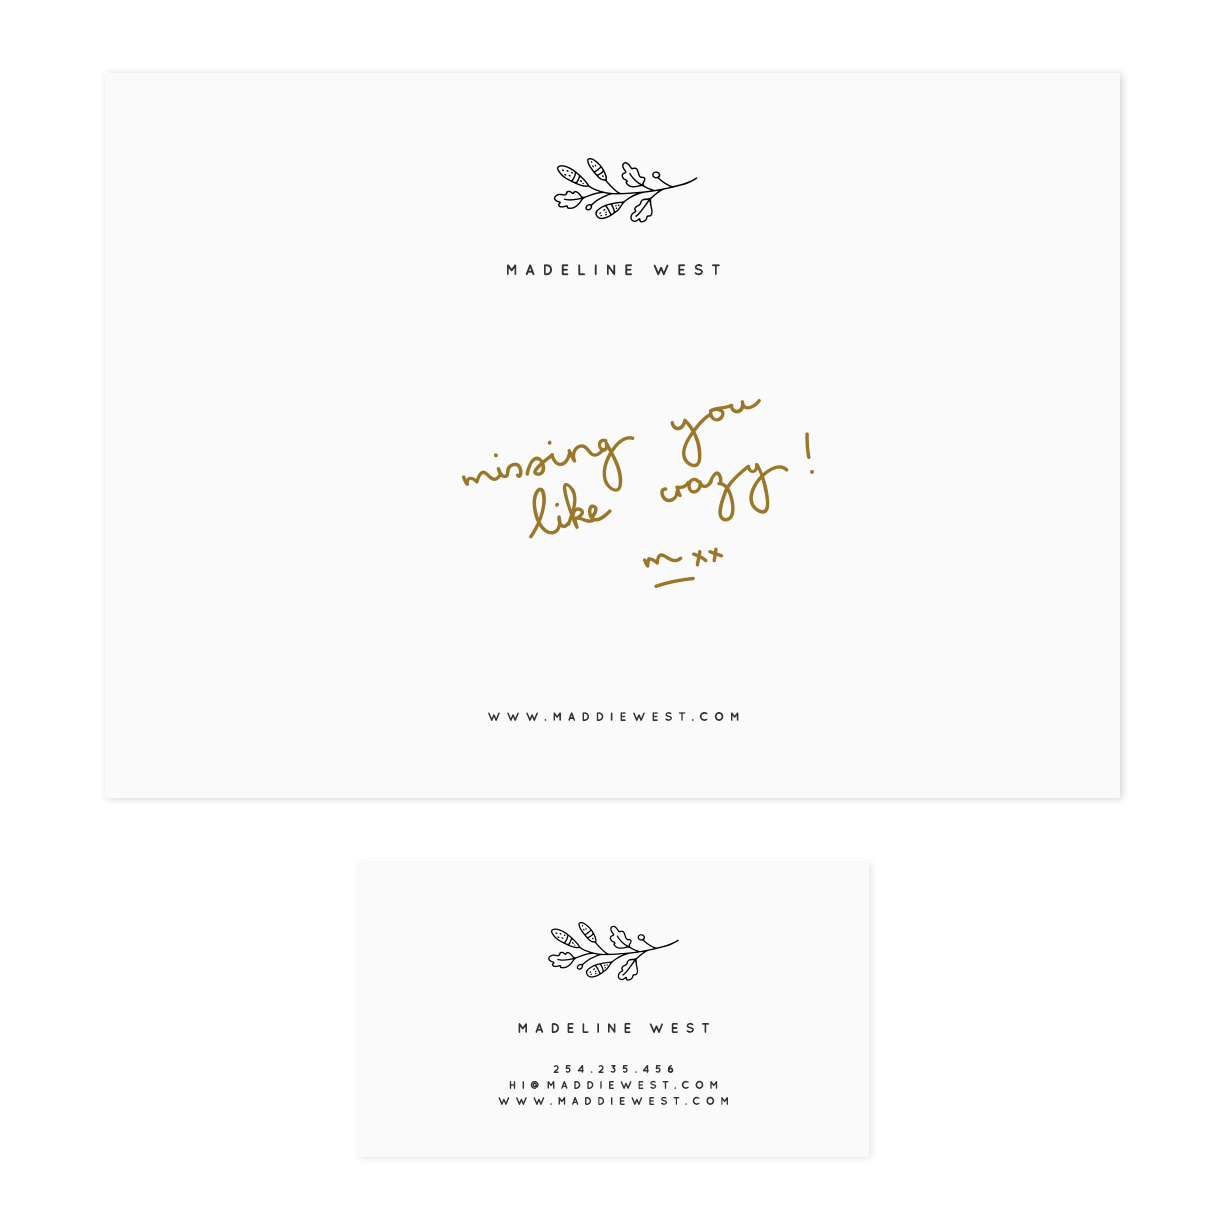 freehanddrawnstationerytemplate.jpg